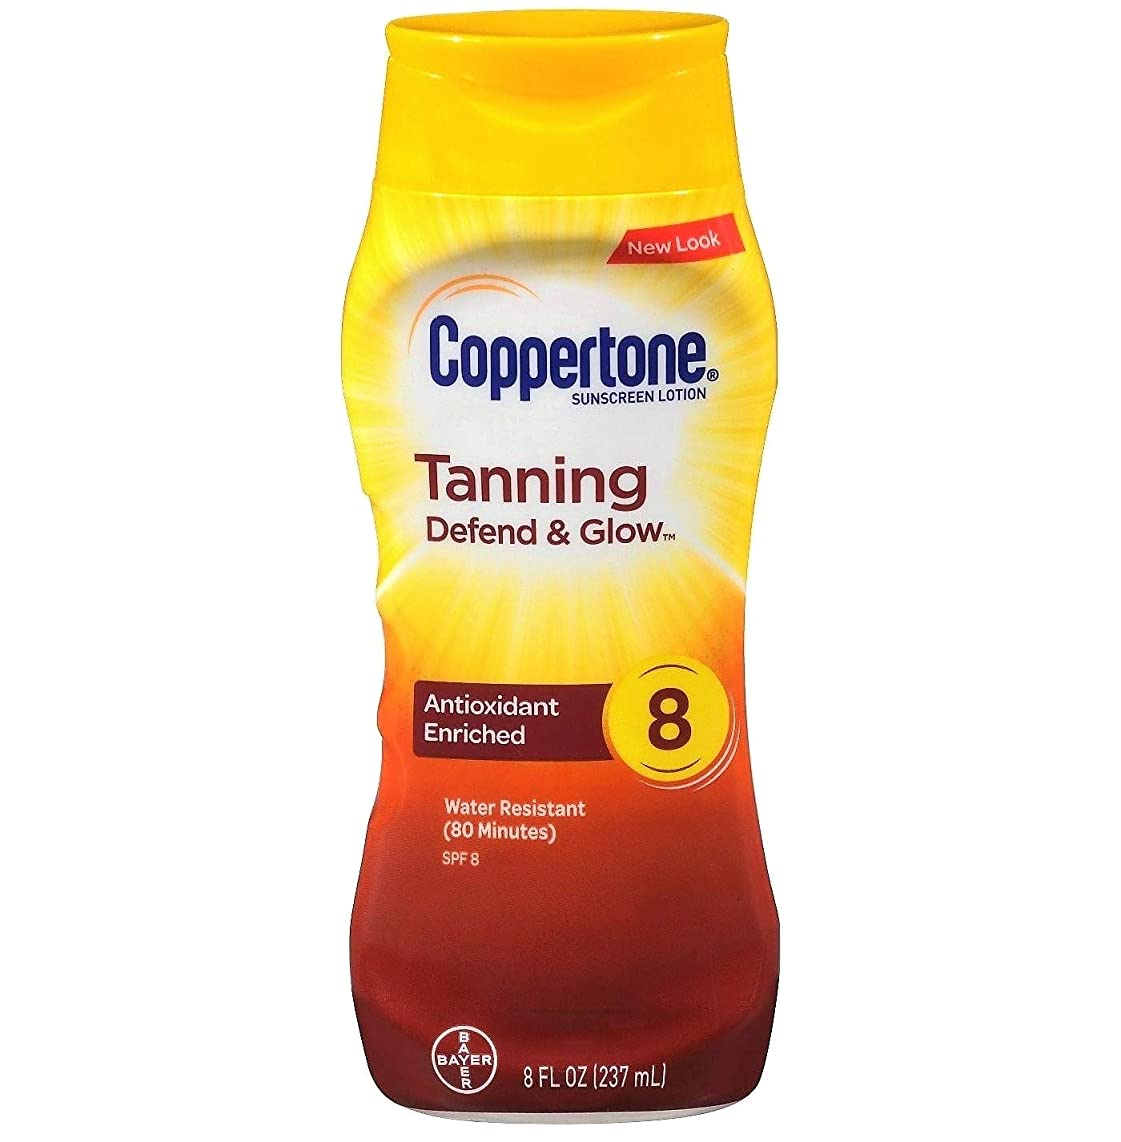 Coppertone Tanning Lotion SPF 8 Sunscreen-8 oz, 2 pack